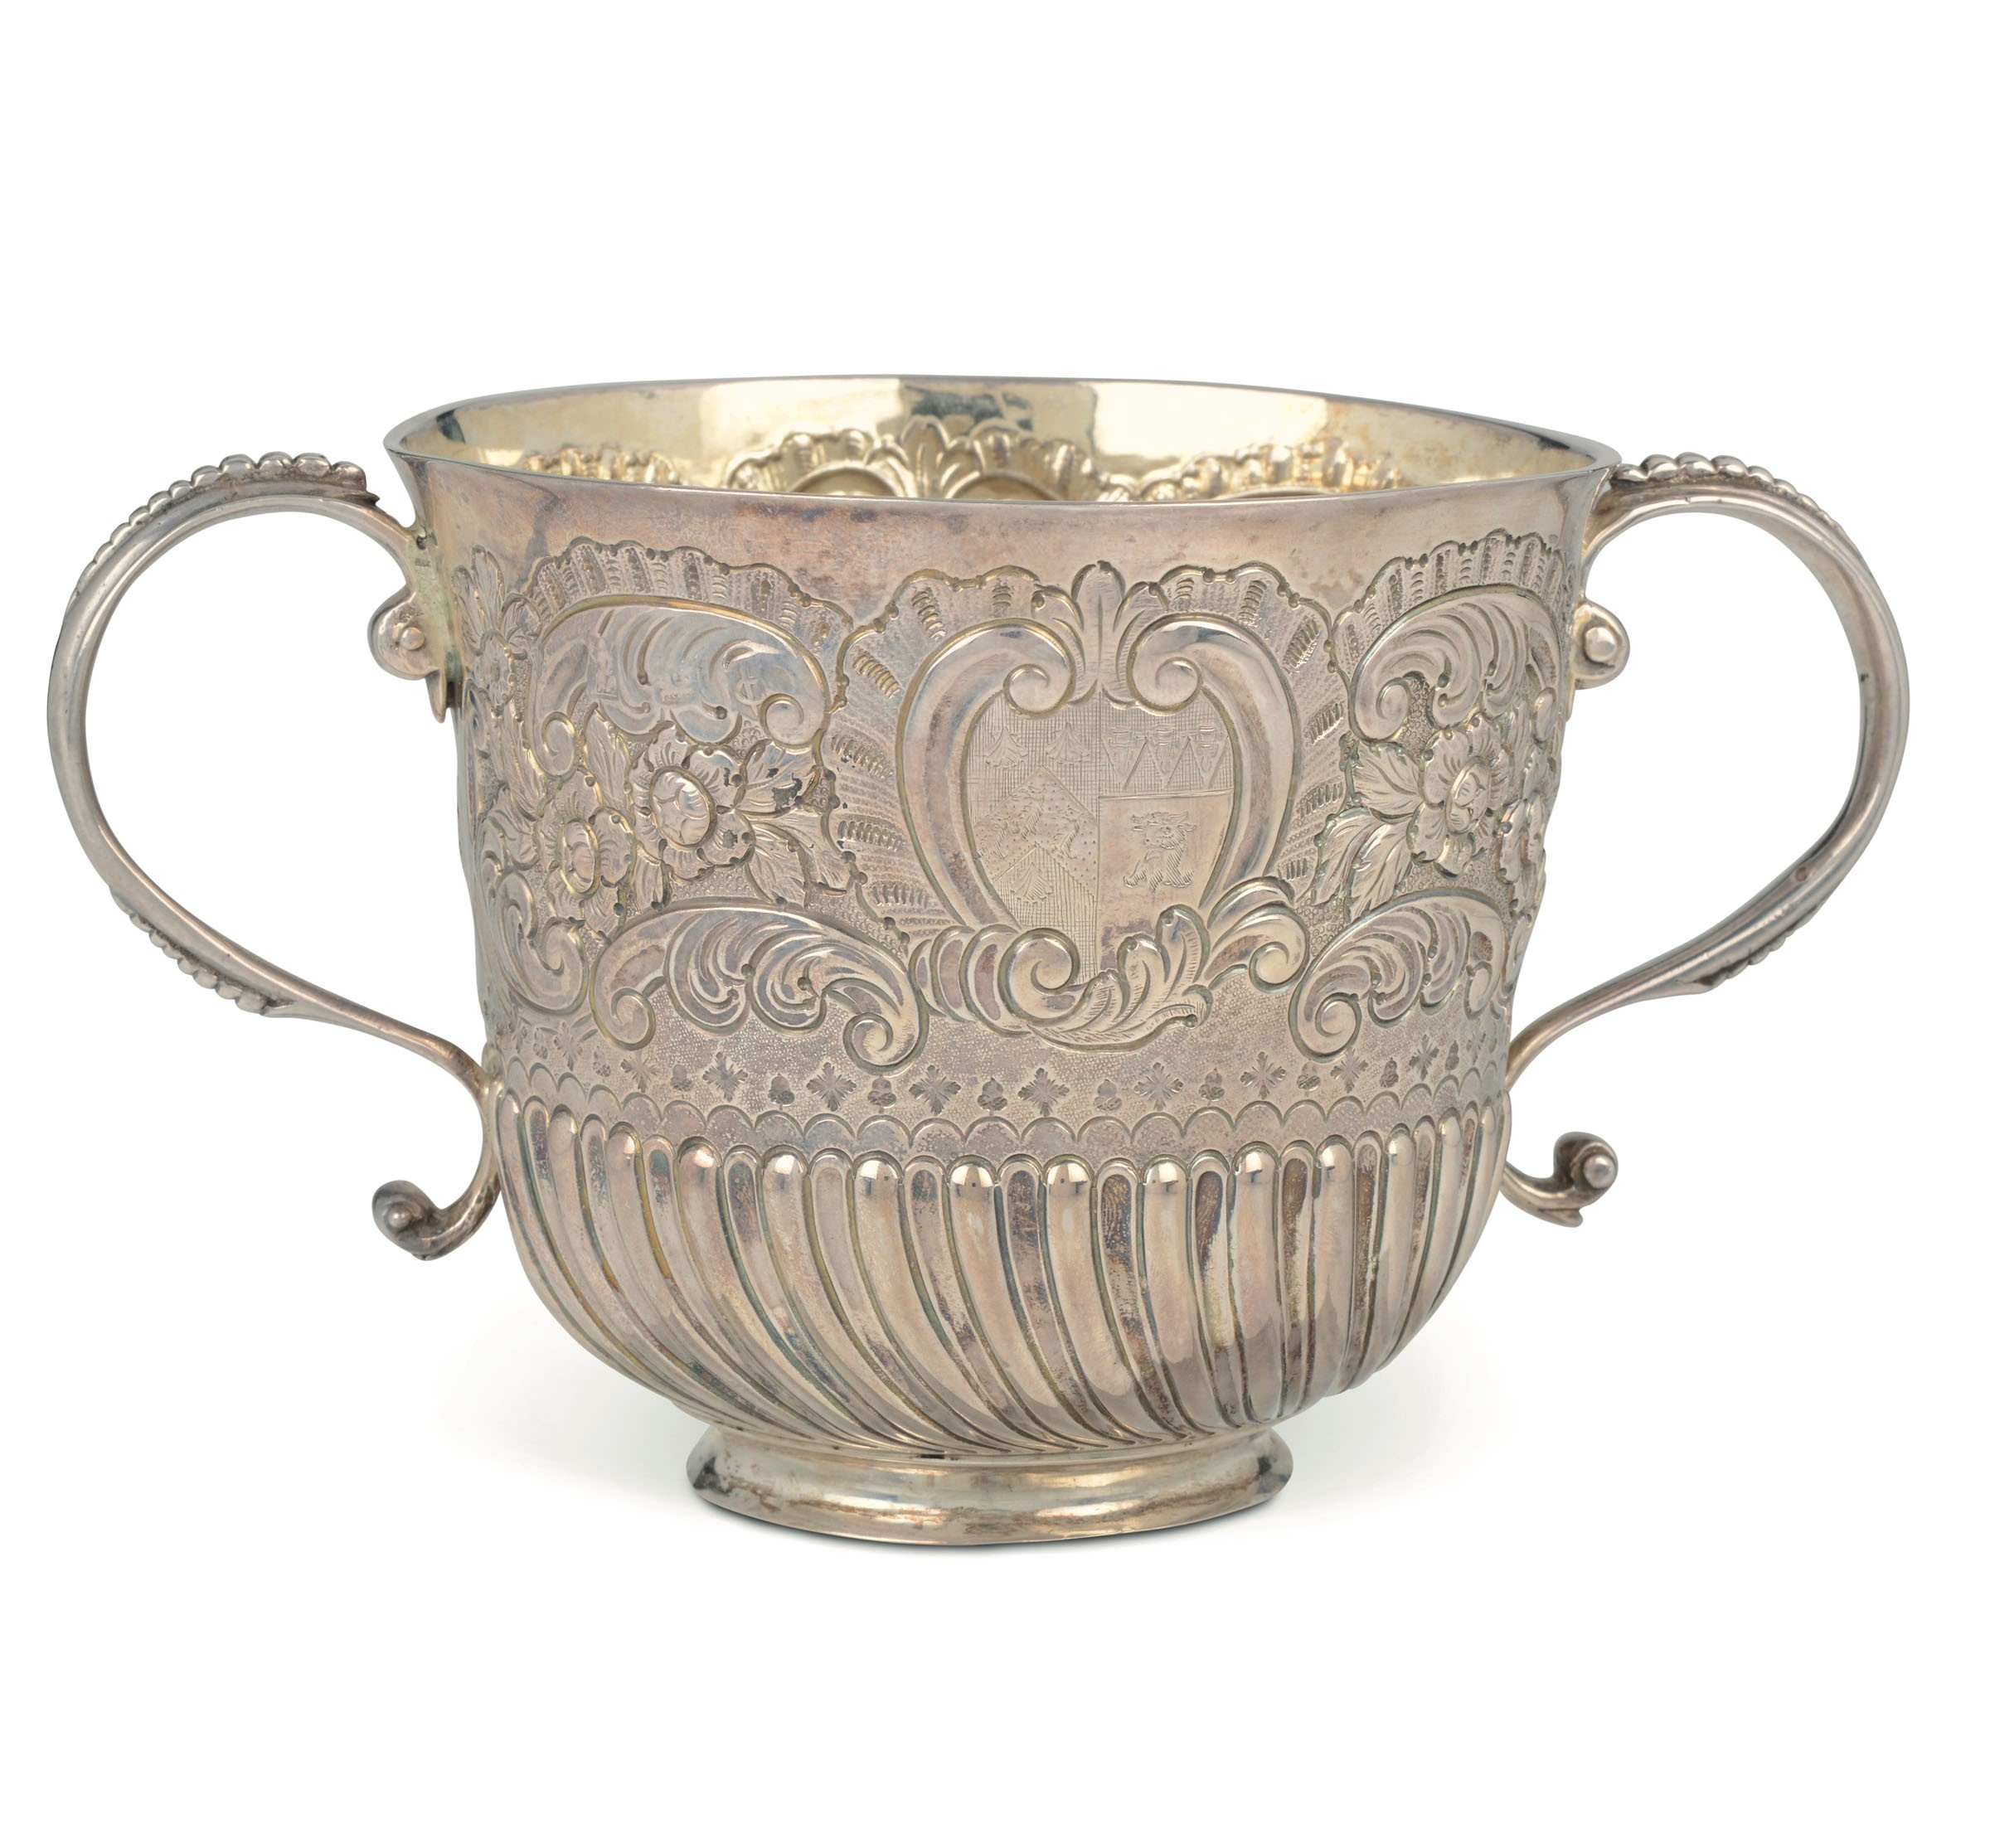 Lot 3 - A silver porringer, London, 1698 - Molten, embossed and chiselled silver. Silversmith [...]